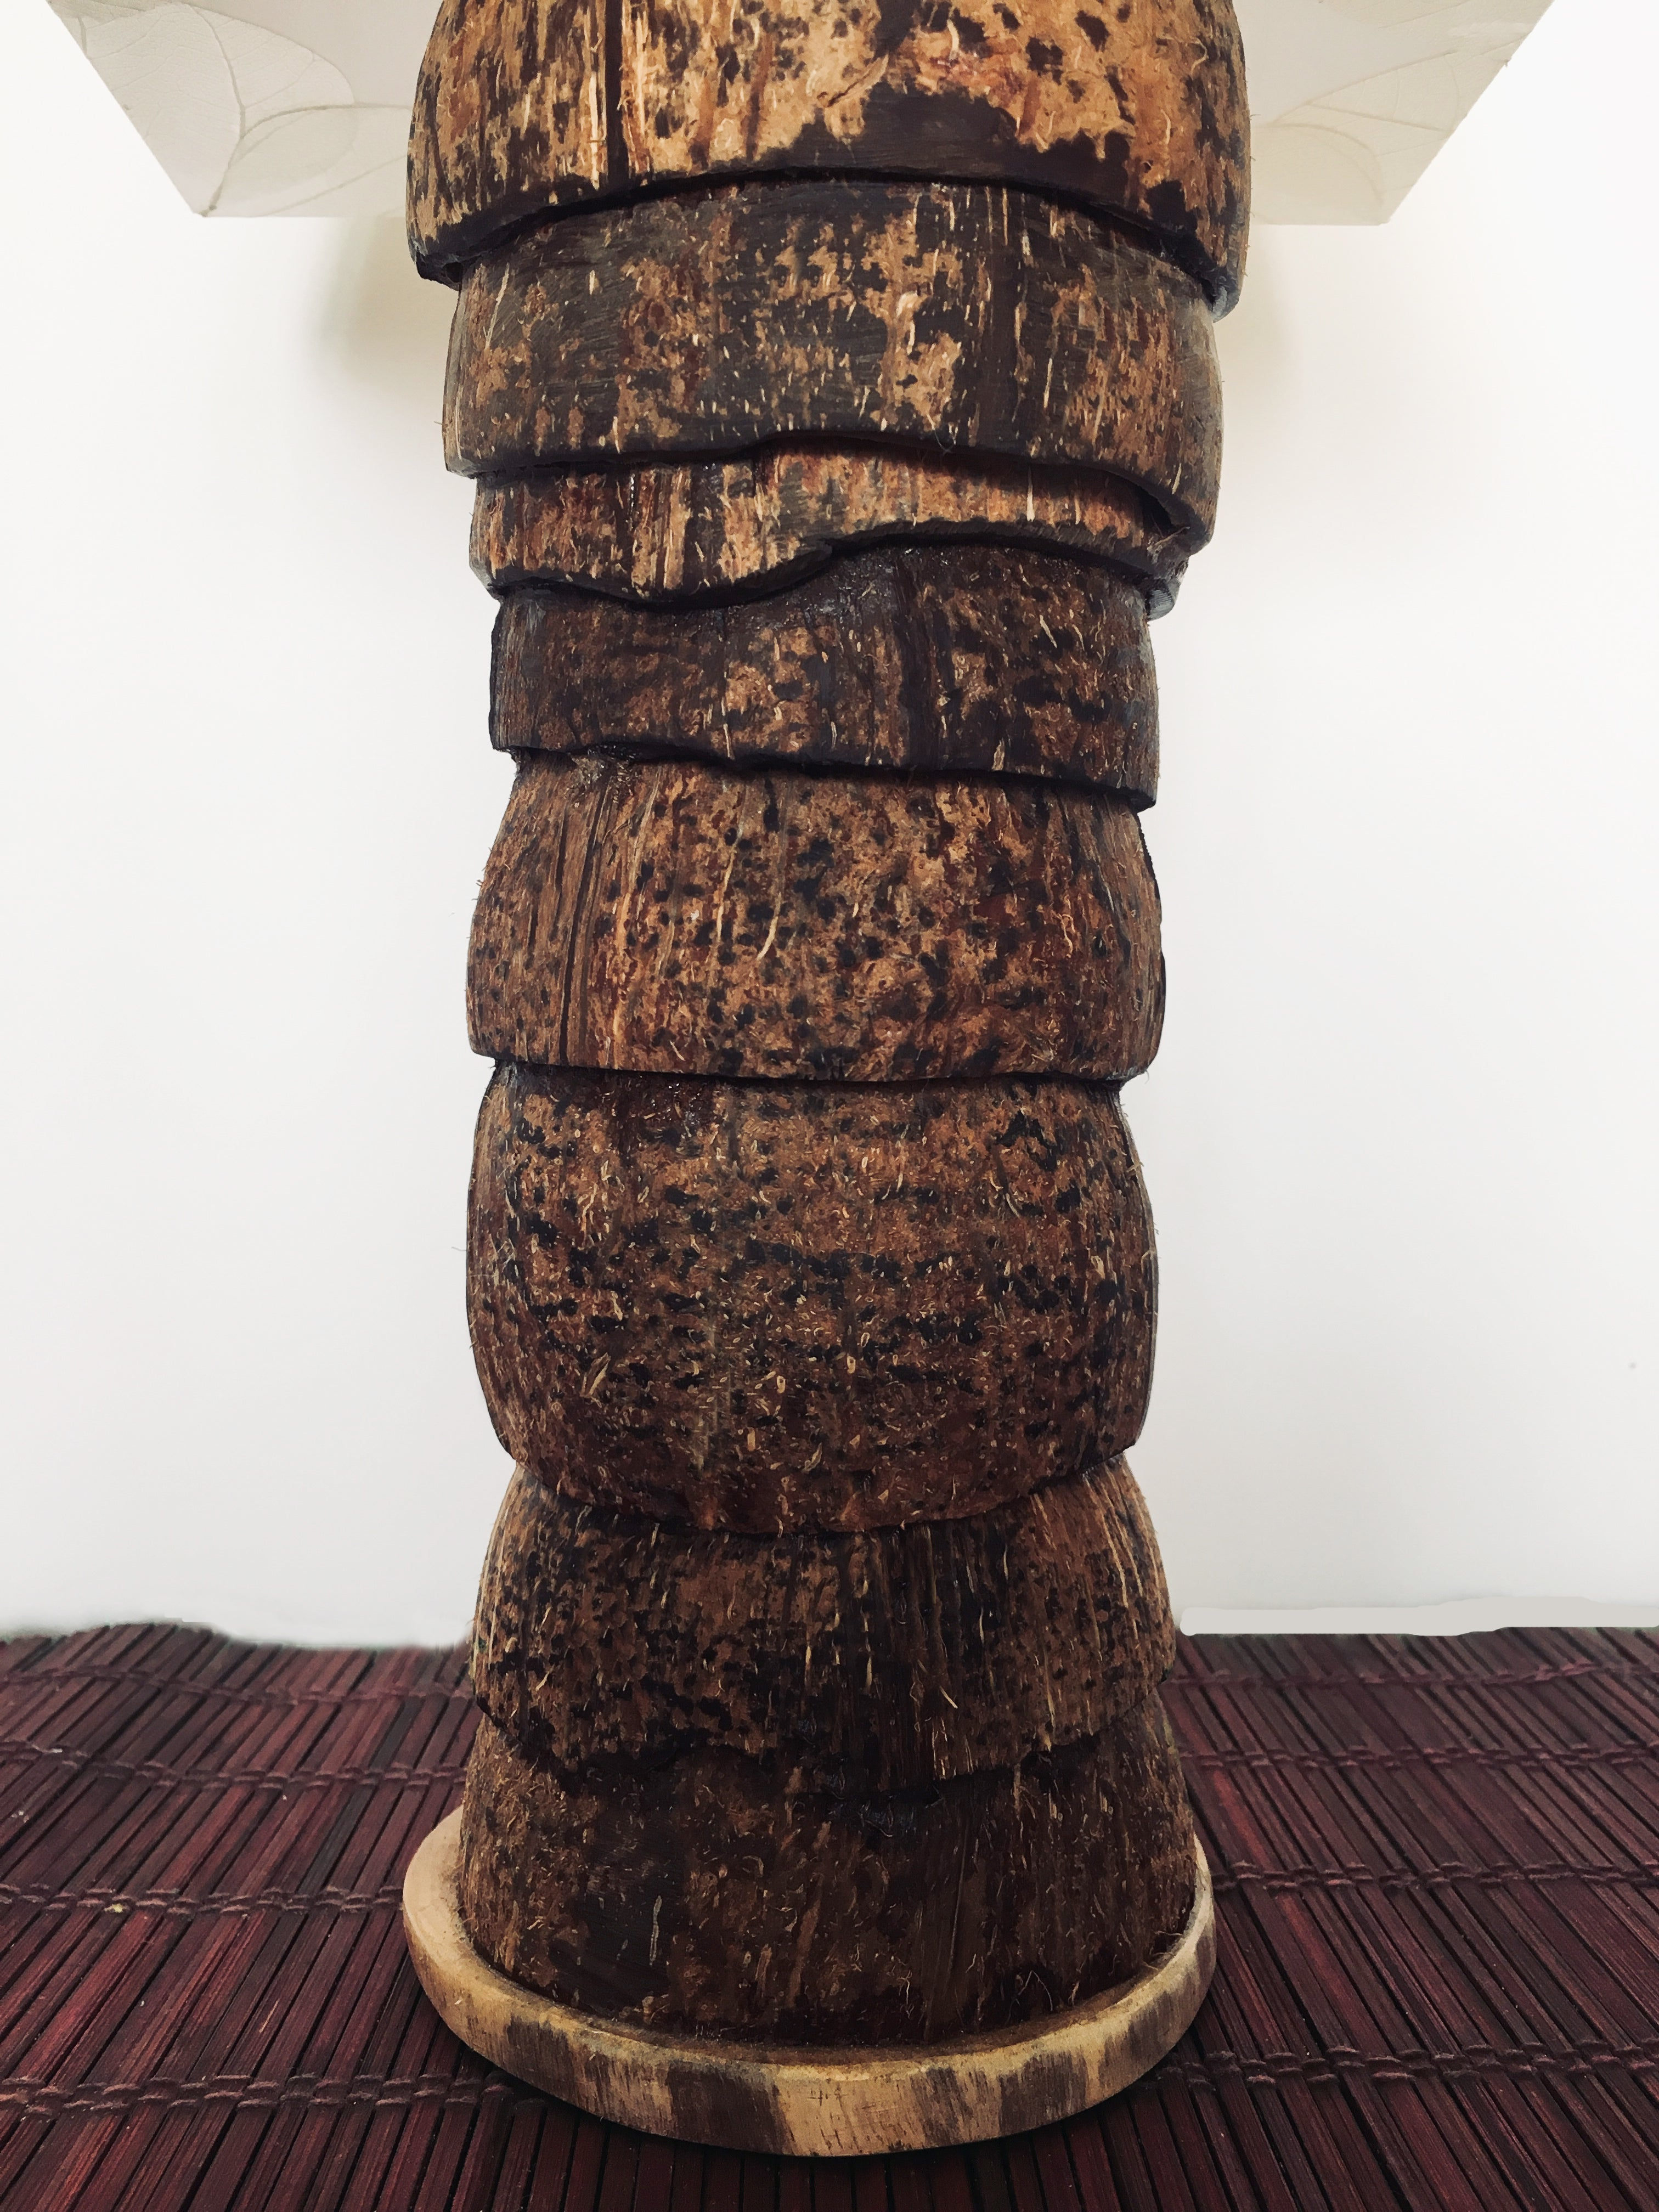 coconut shell lamp